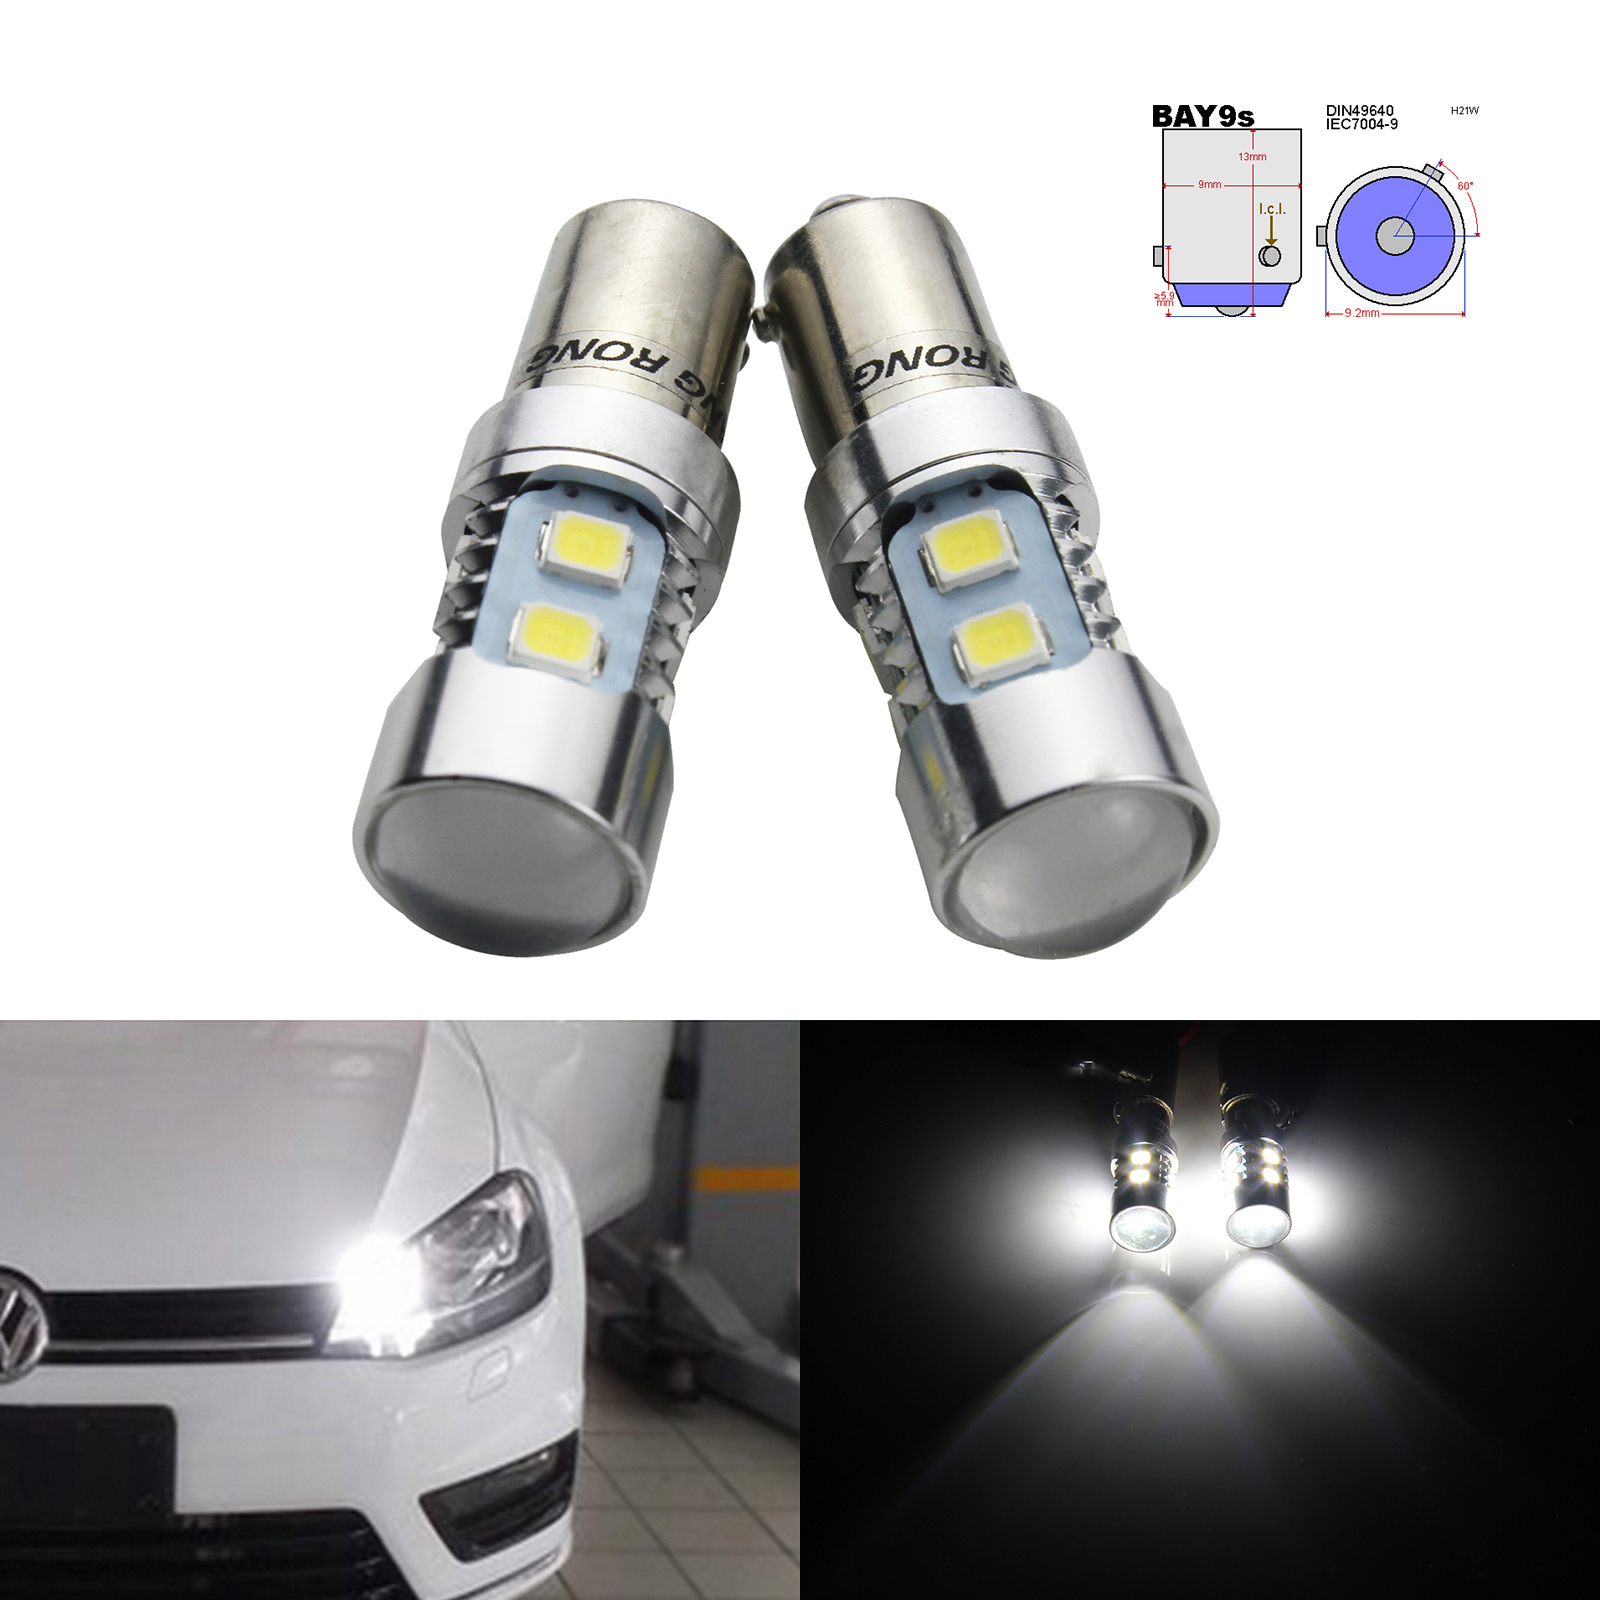 2X Xenon Side Light Xenon White Car Bulb 433 H6W Bax9S X Xenon 12V Dc Bayone 3